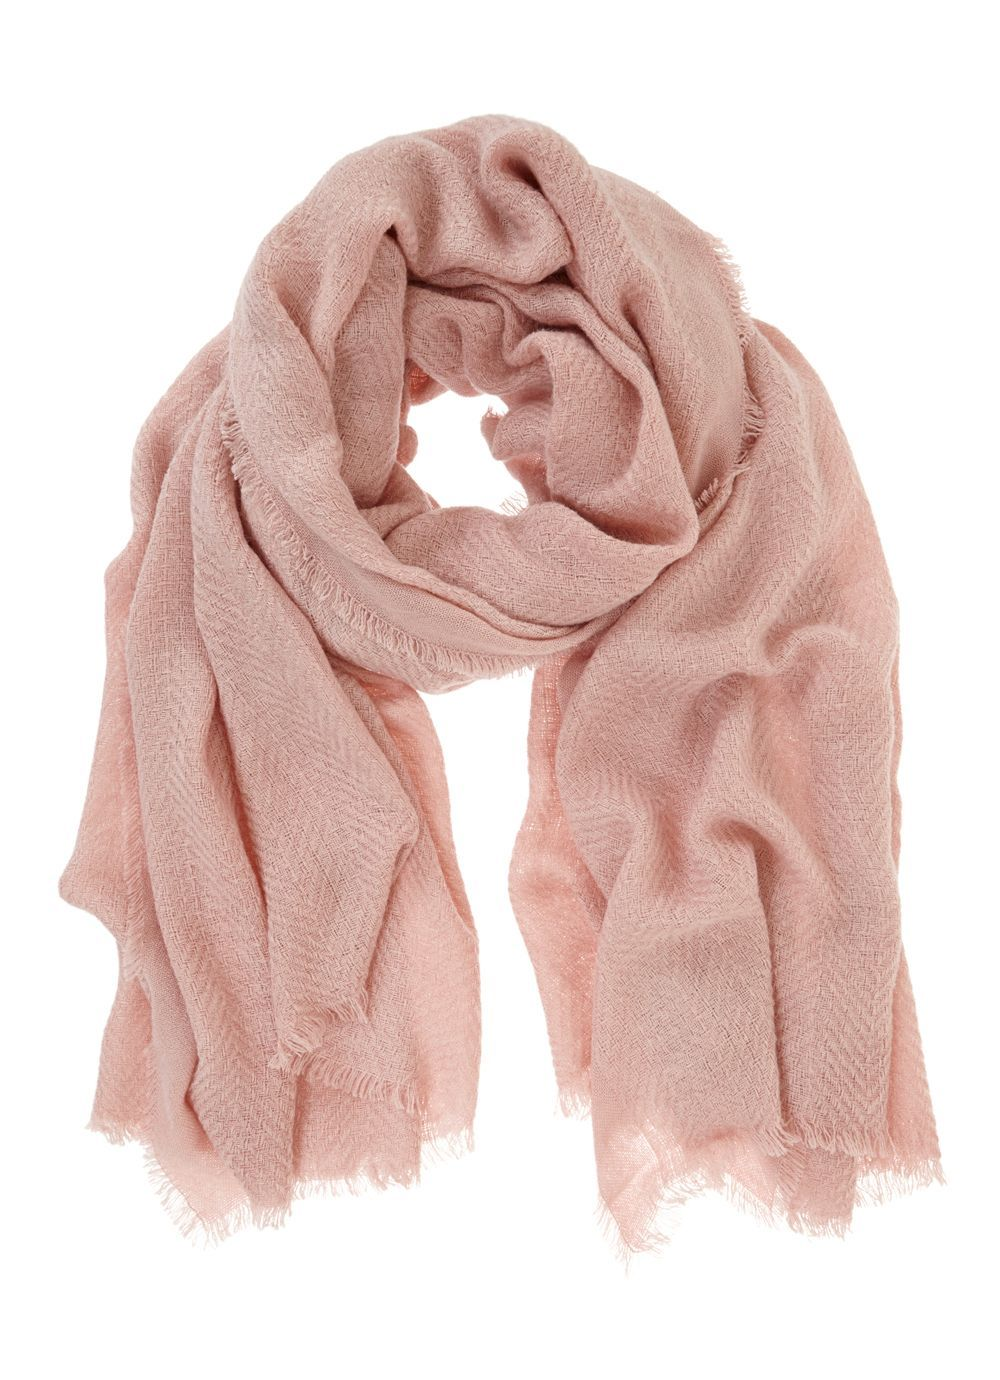 Rose Plain Textured Scarf, Pink - predominant colour: blush; occasions: casual, creative work; type of pattern: standard; style: regular; size: standard; material: fabric; pattern: plain; wardrobe: basic; season: a/w 2016